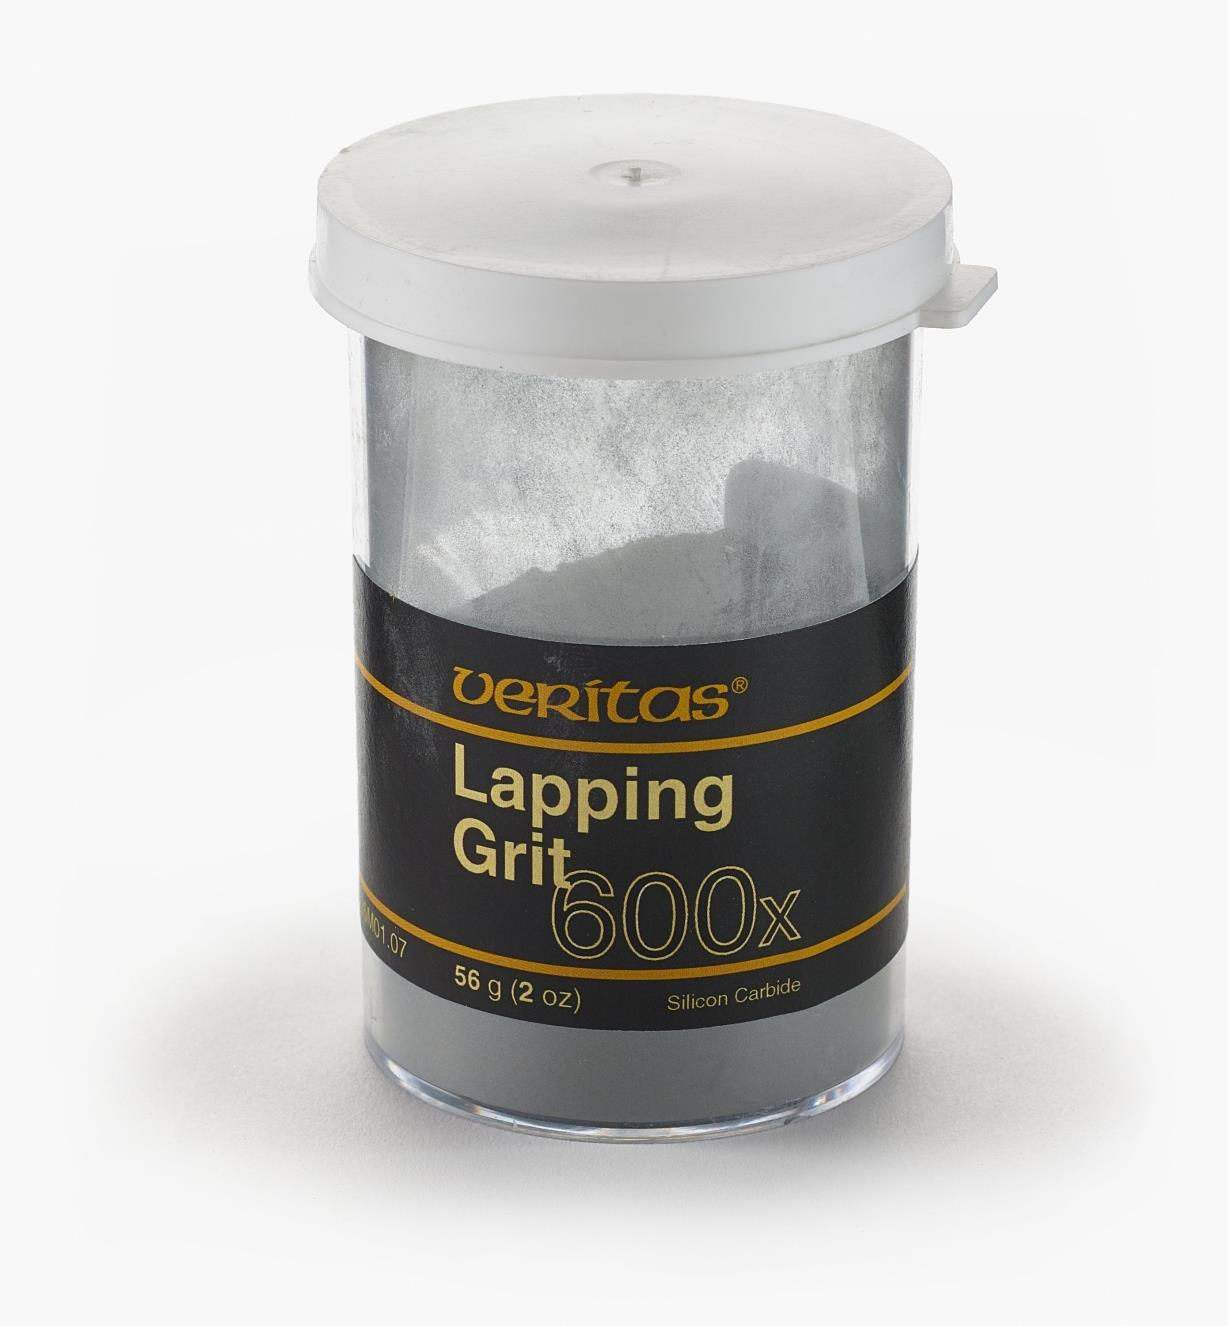 05M0107 - 600x Lapping Grit, 2 oz